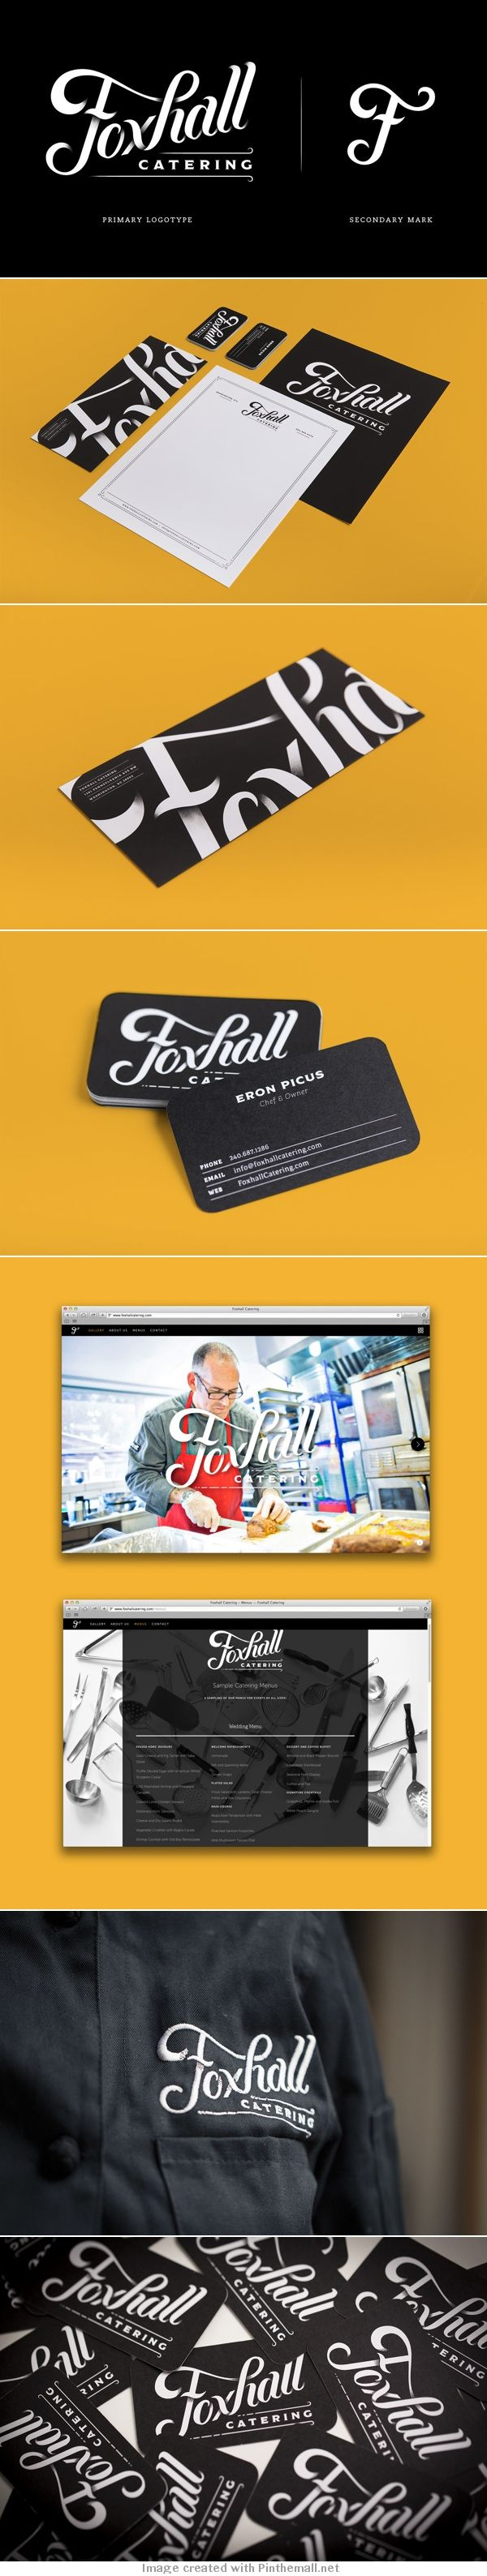 "Foxhall Catering  This web design is amazing and a great concept for ours... Like the idea of showing the ""brew master"" at work..."